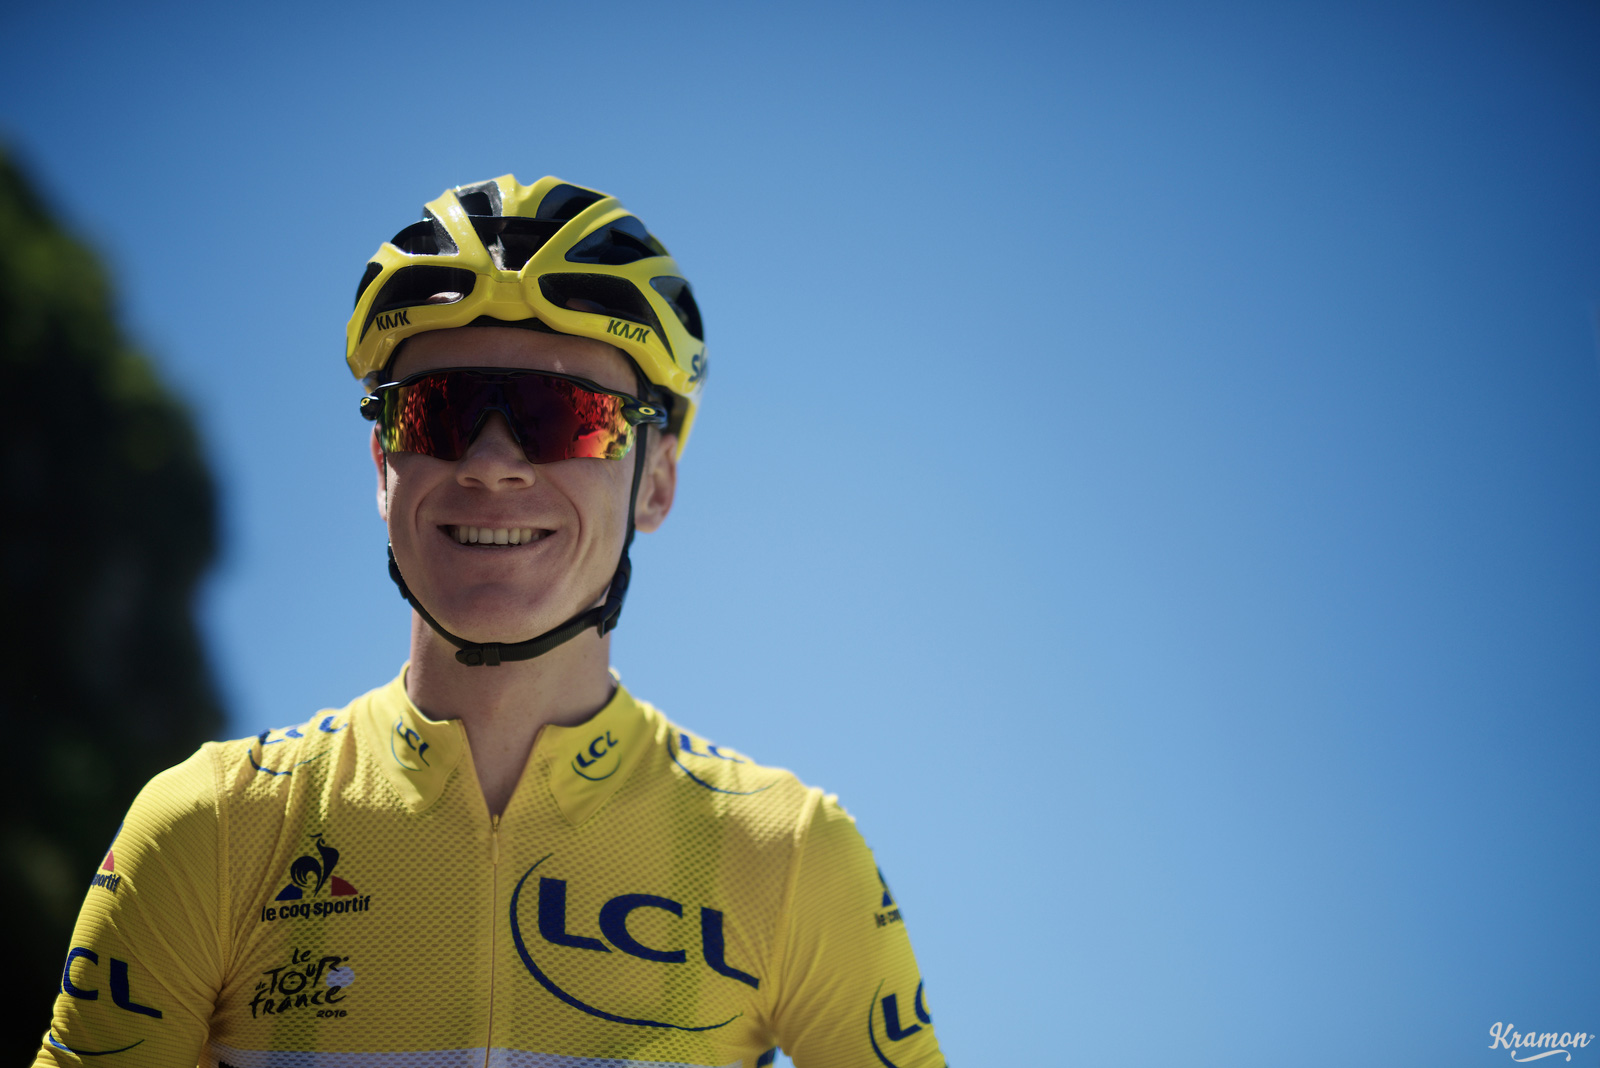 Will Chris Froome be back in yellow and smiling again next July?